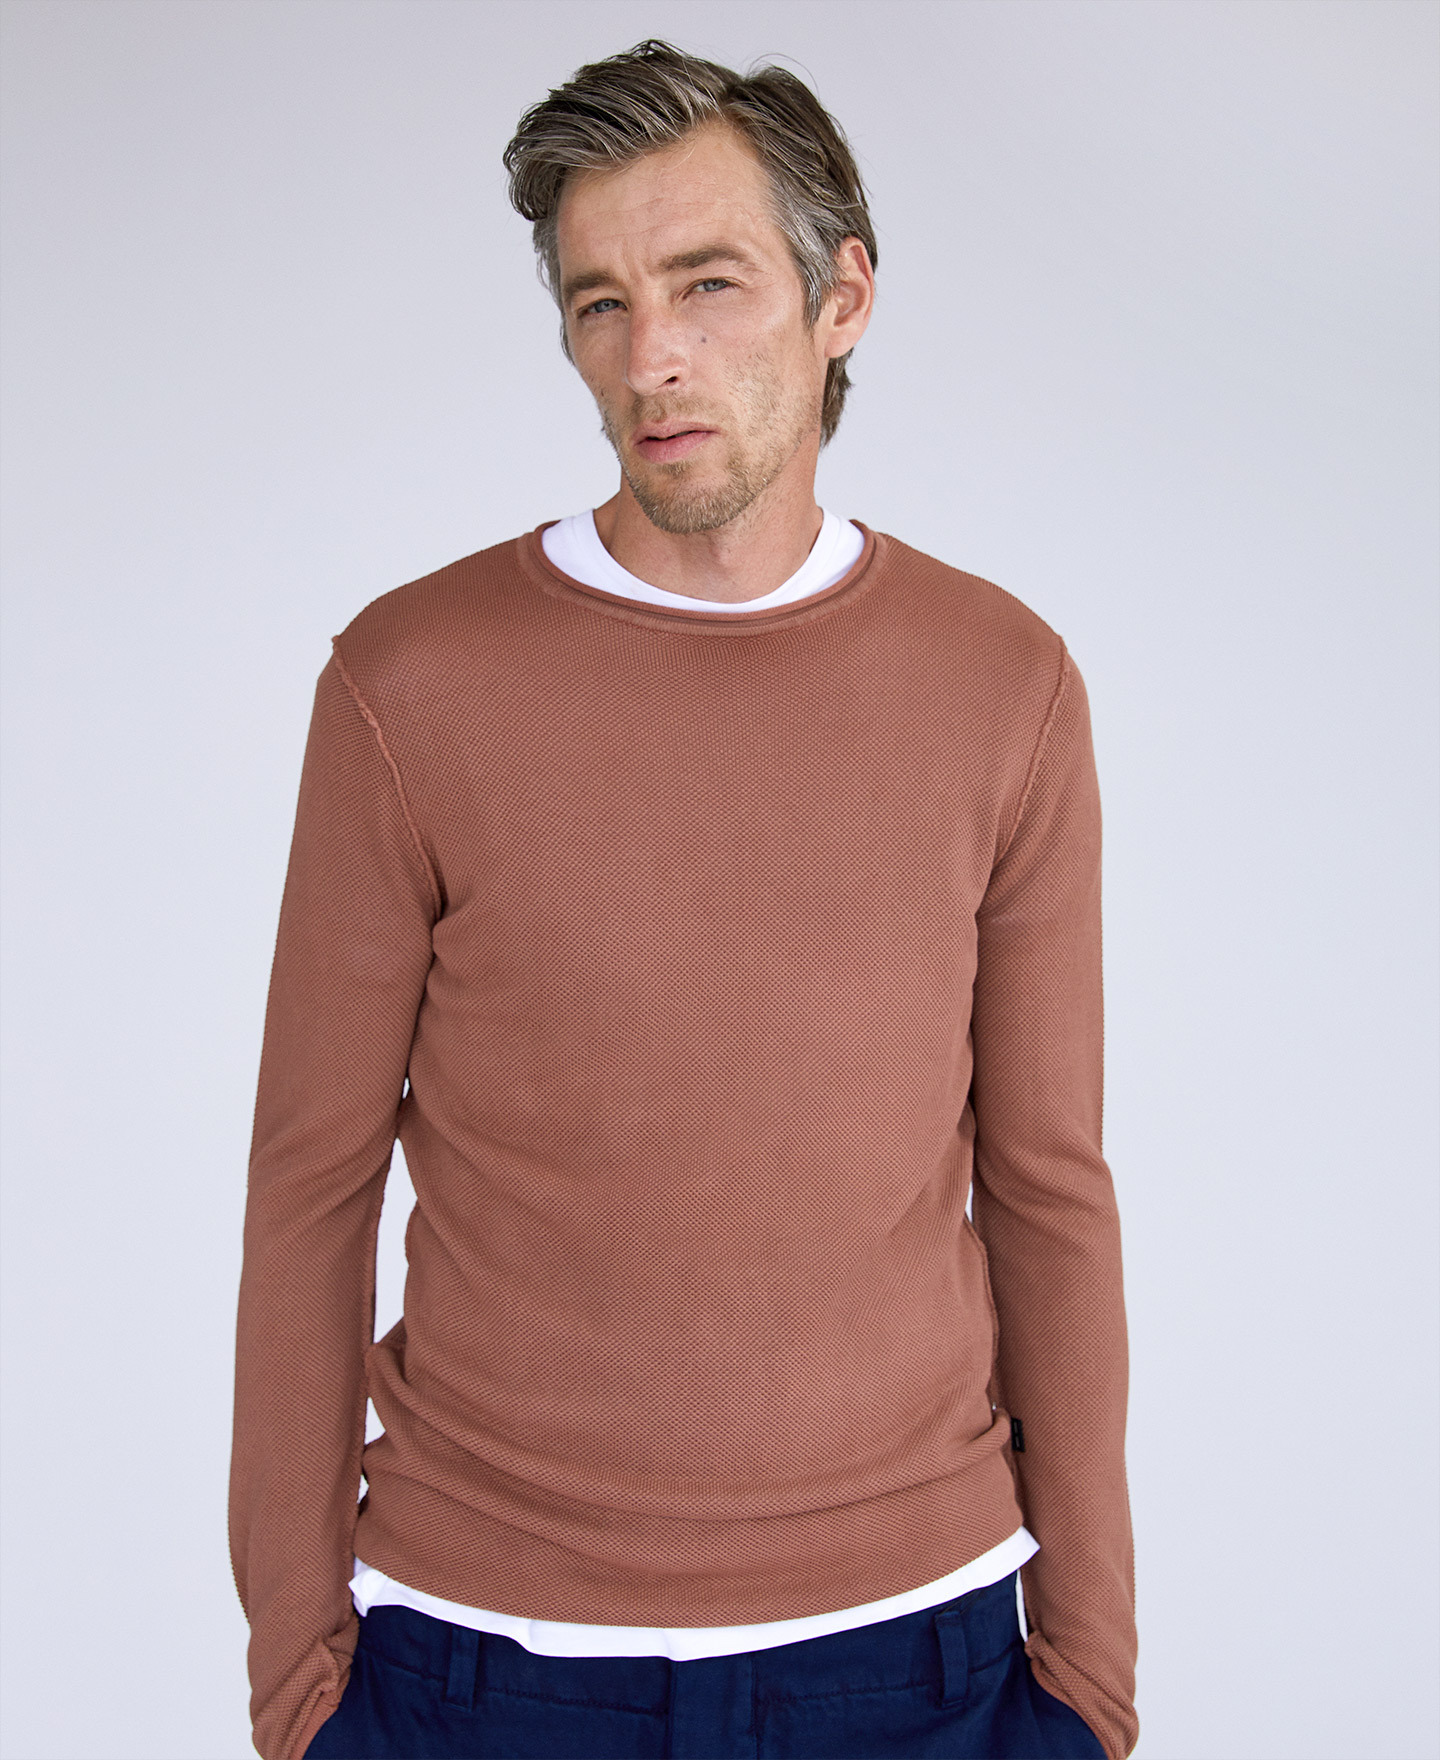 VISCOSE AND COTTON KNITTED T-SHIRT [173581716211]